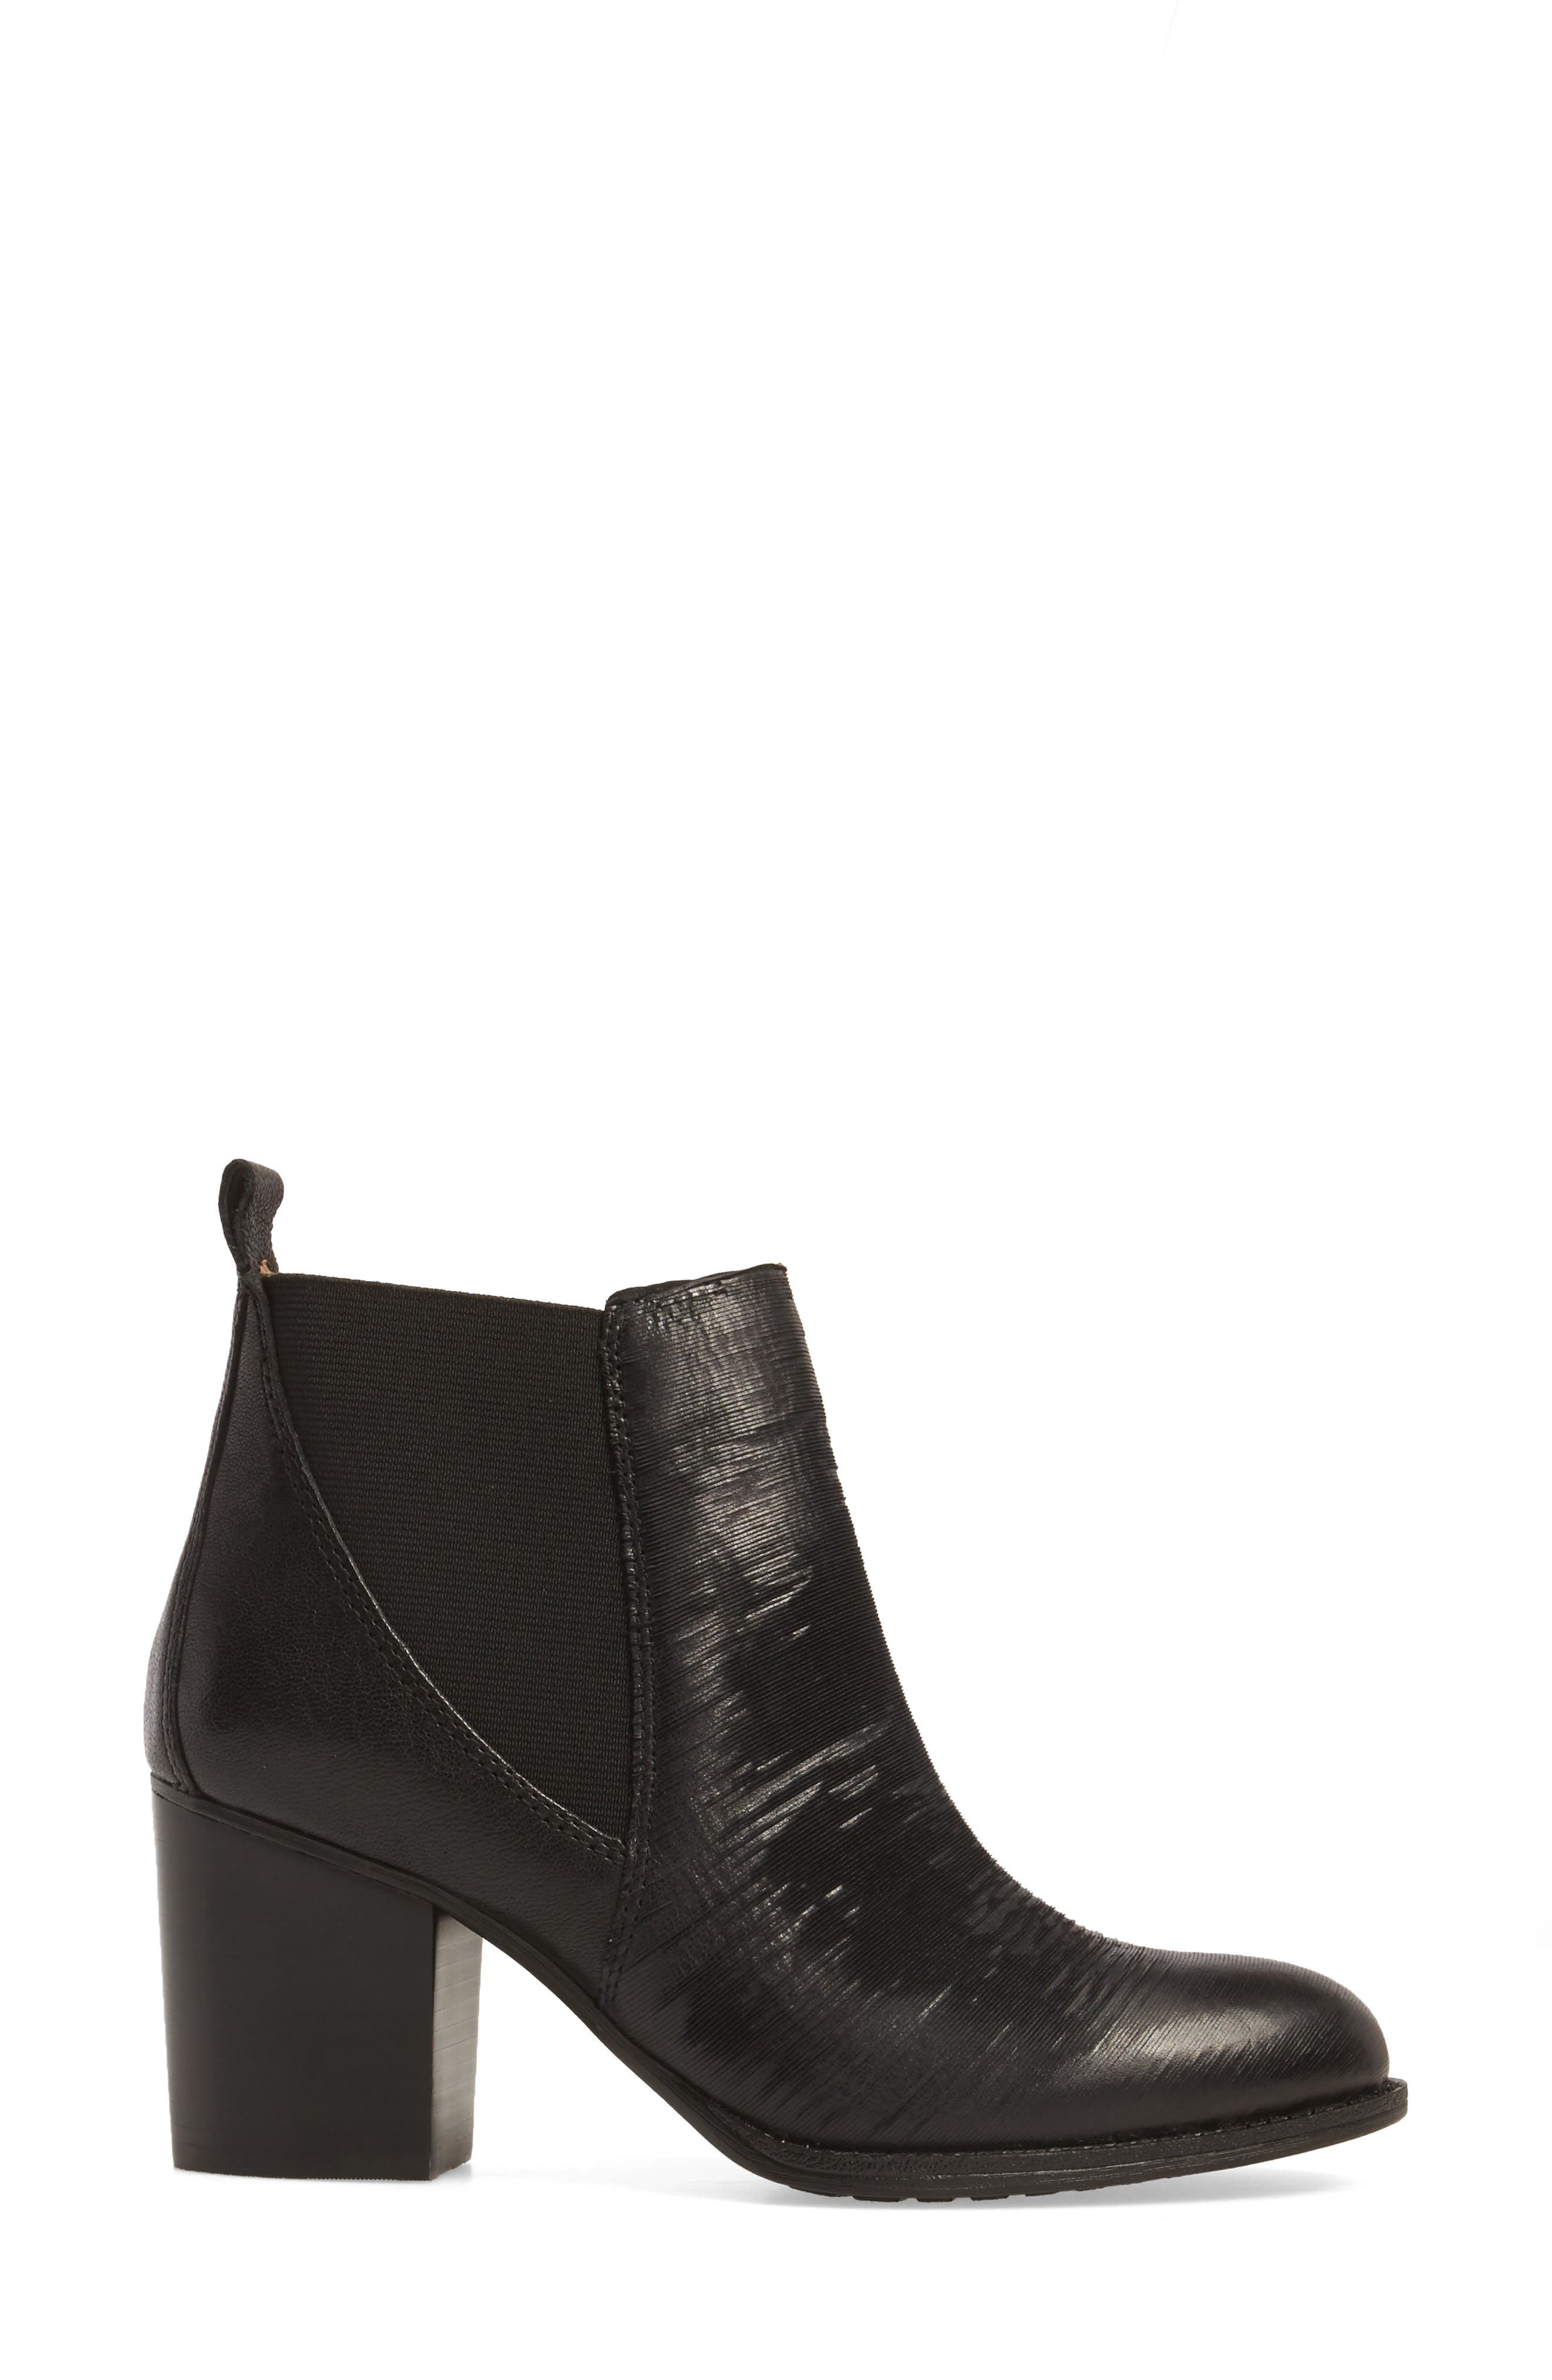 Welling Bootie,                             Alternate thumbnail 3, color,                             Black Leather